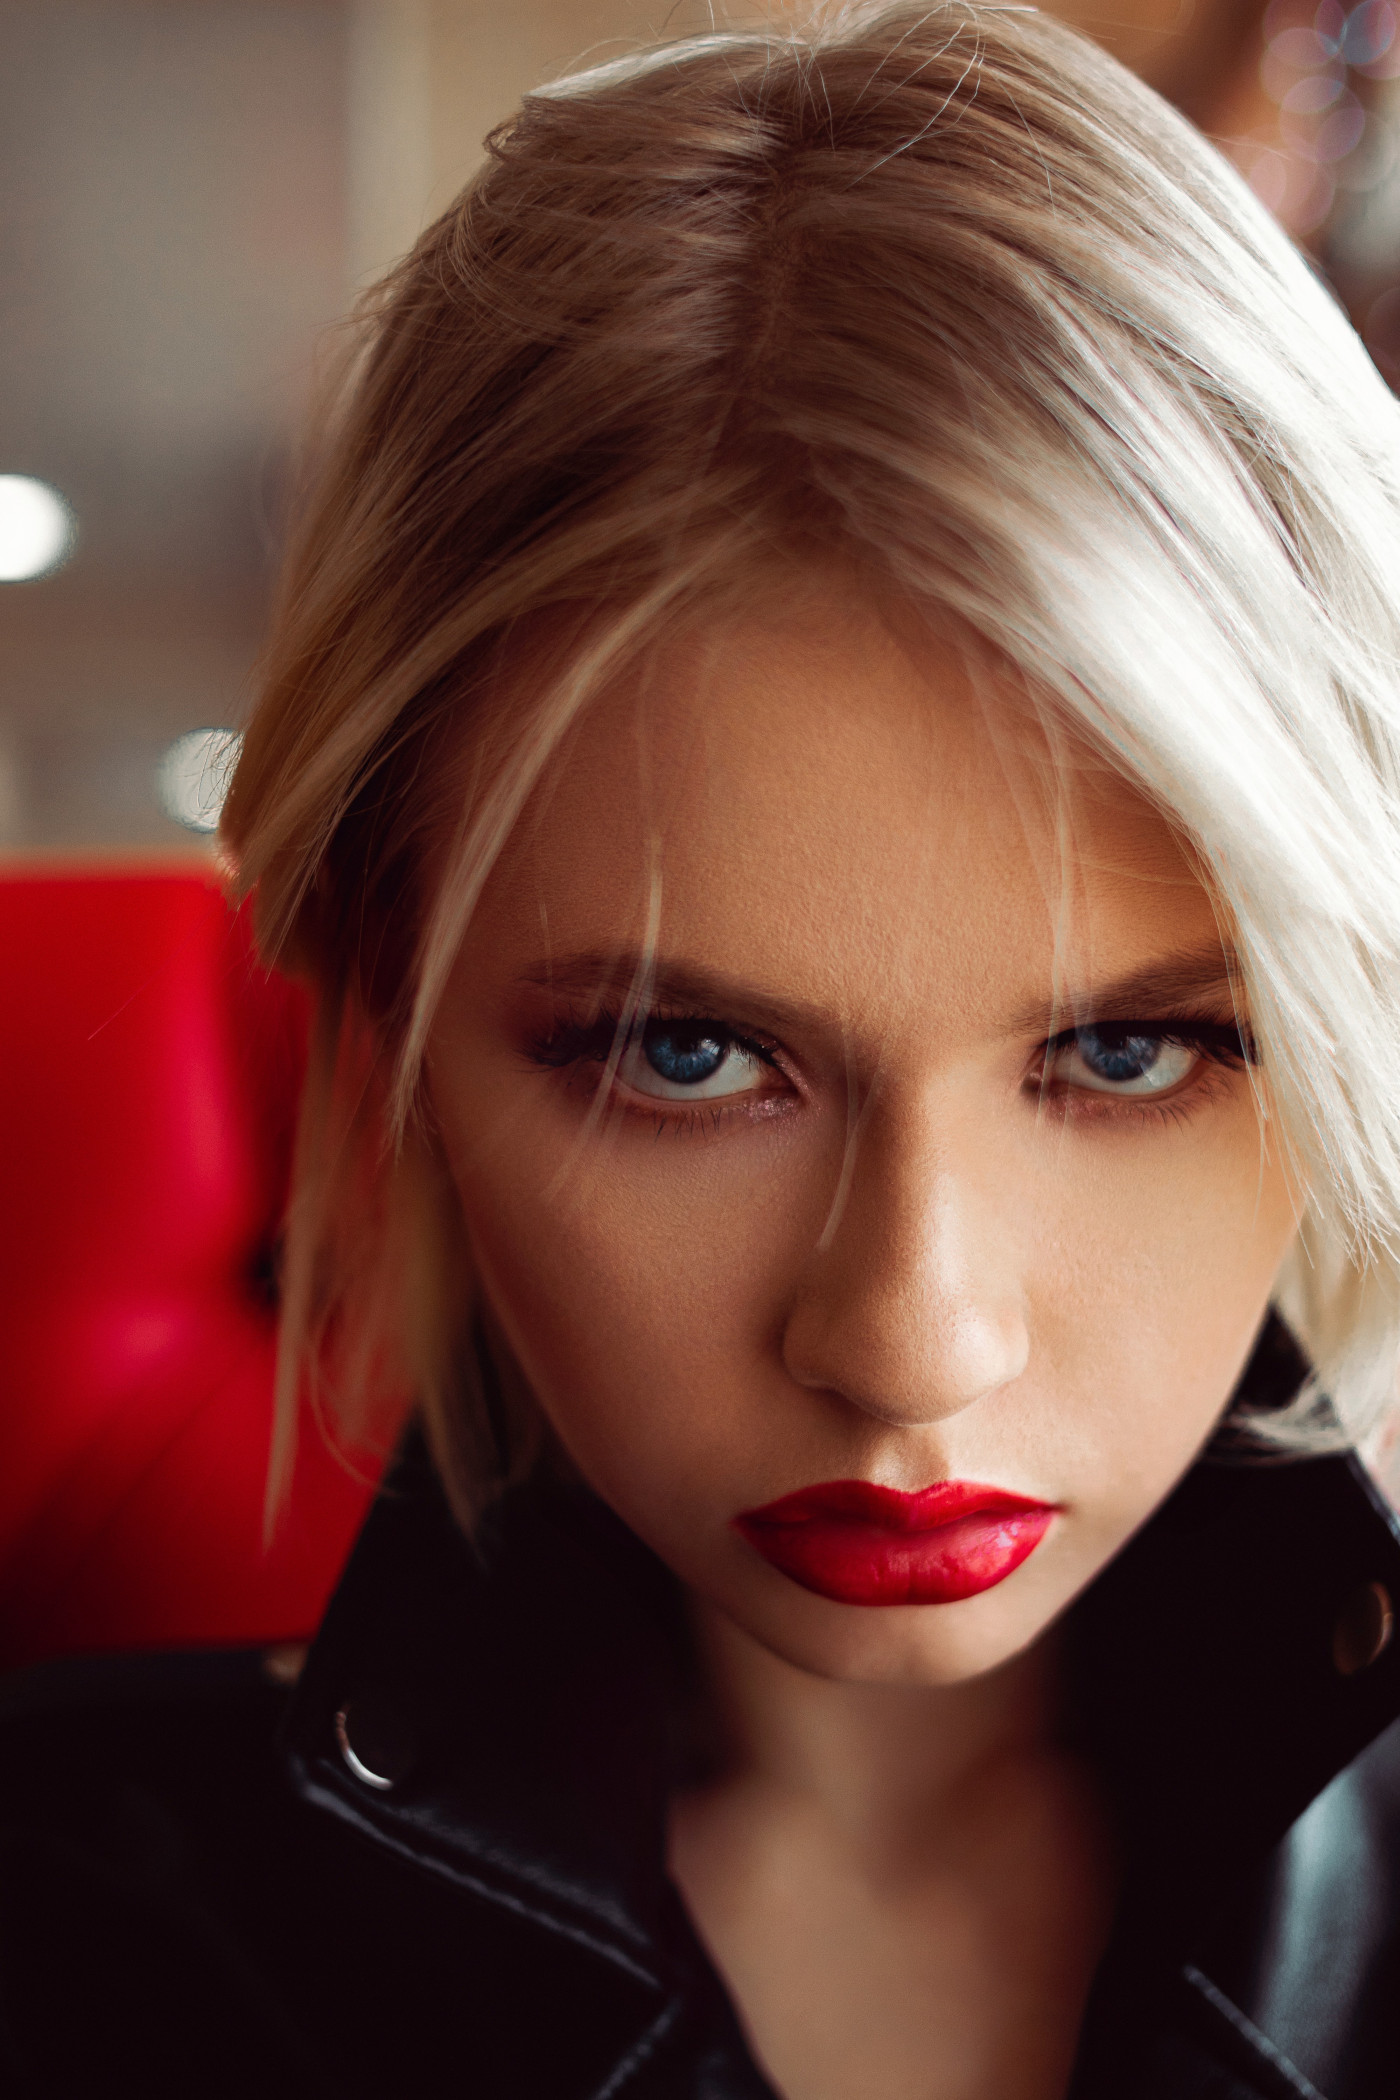 Angry looking girl in red lipstick